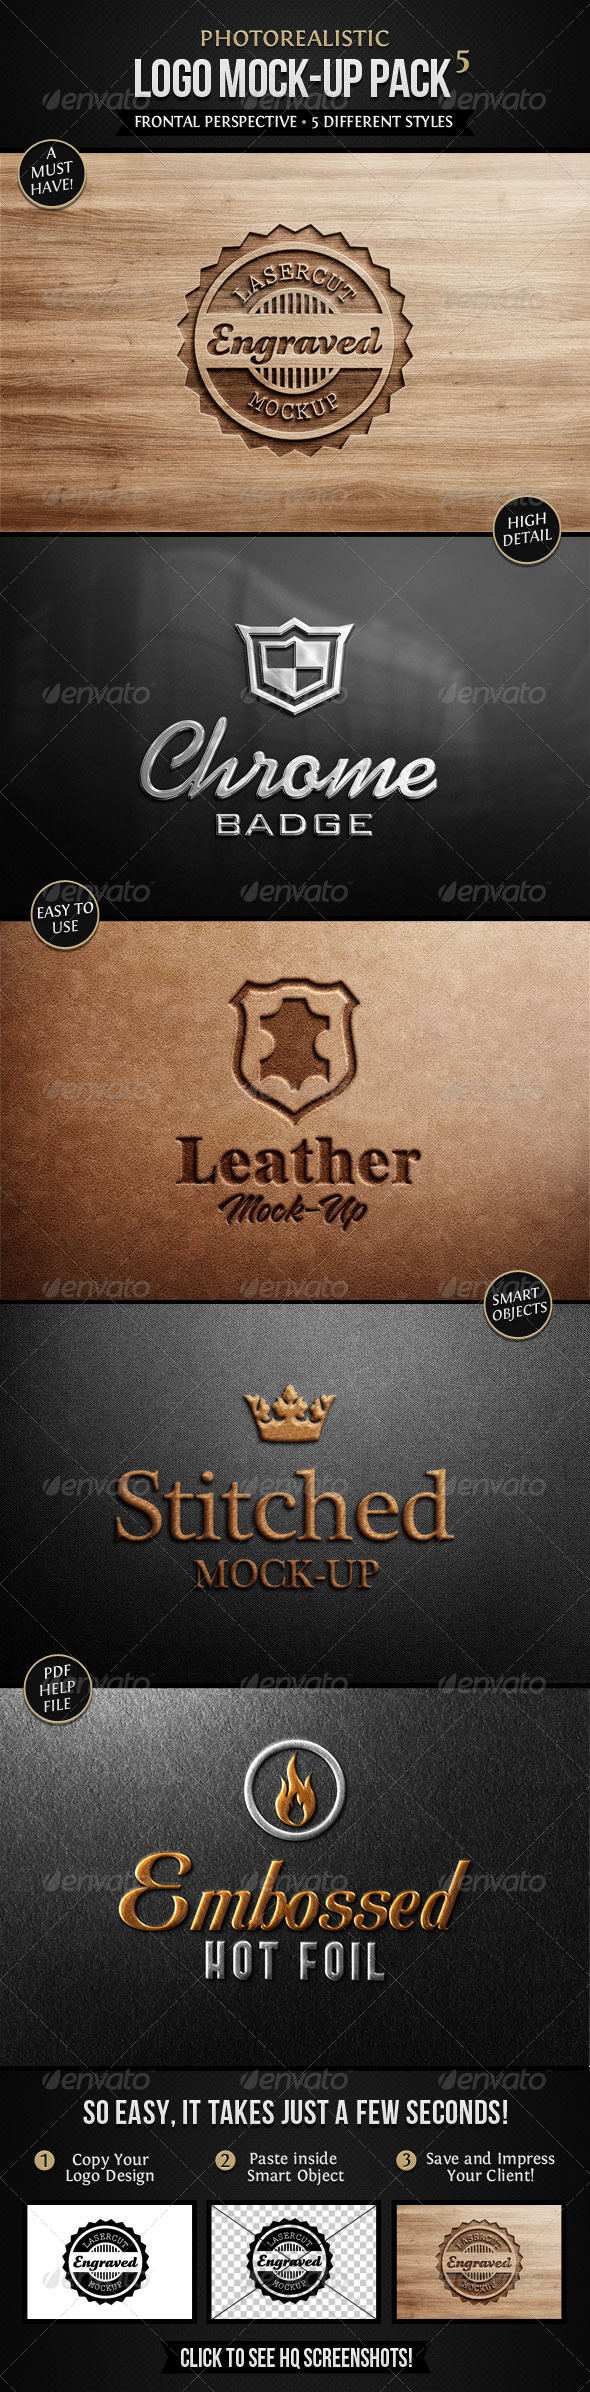 Photorealistic Logo Mock-Up Pack 5 Free Download #1 free download Photorealistic Logo Mock-Up Pack 5 Free Download #1 nulled Photorealistic Logo Mock-Up Pack 5 Free Download #1